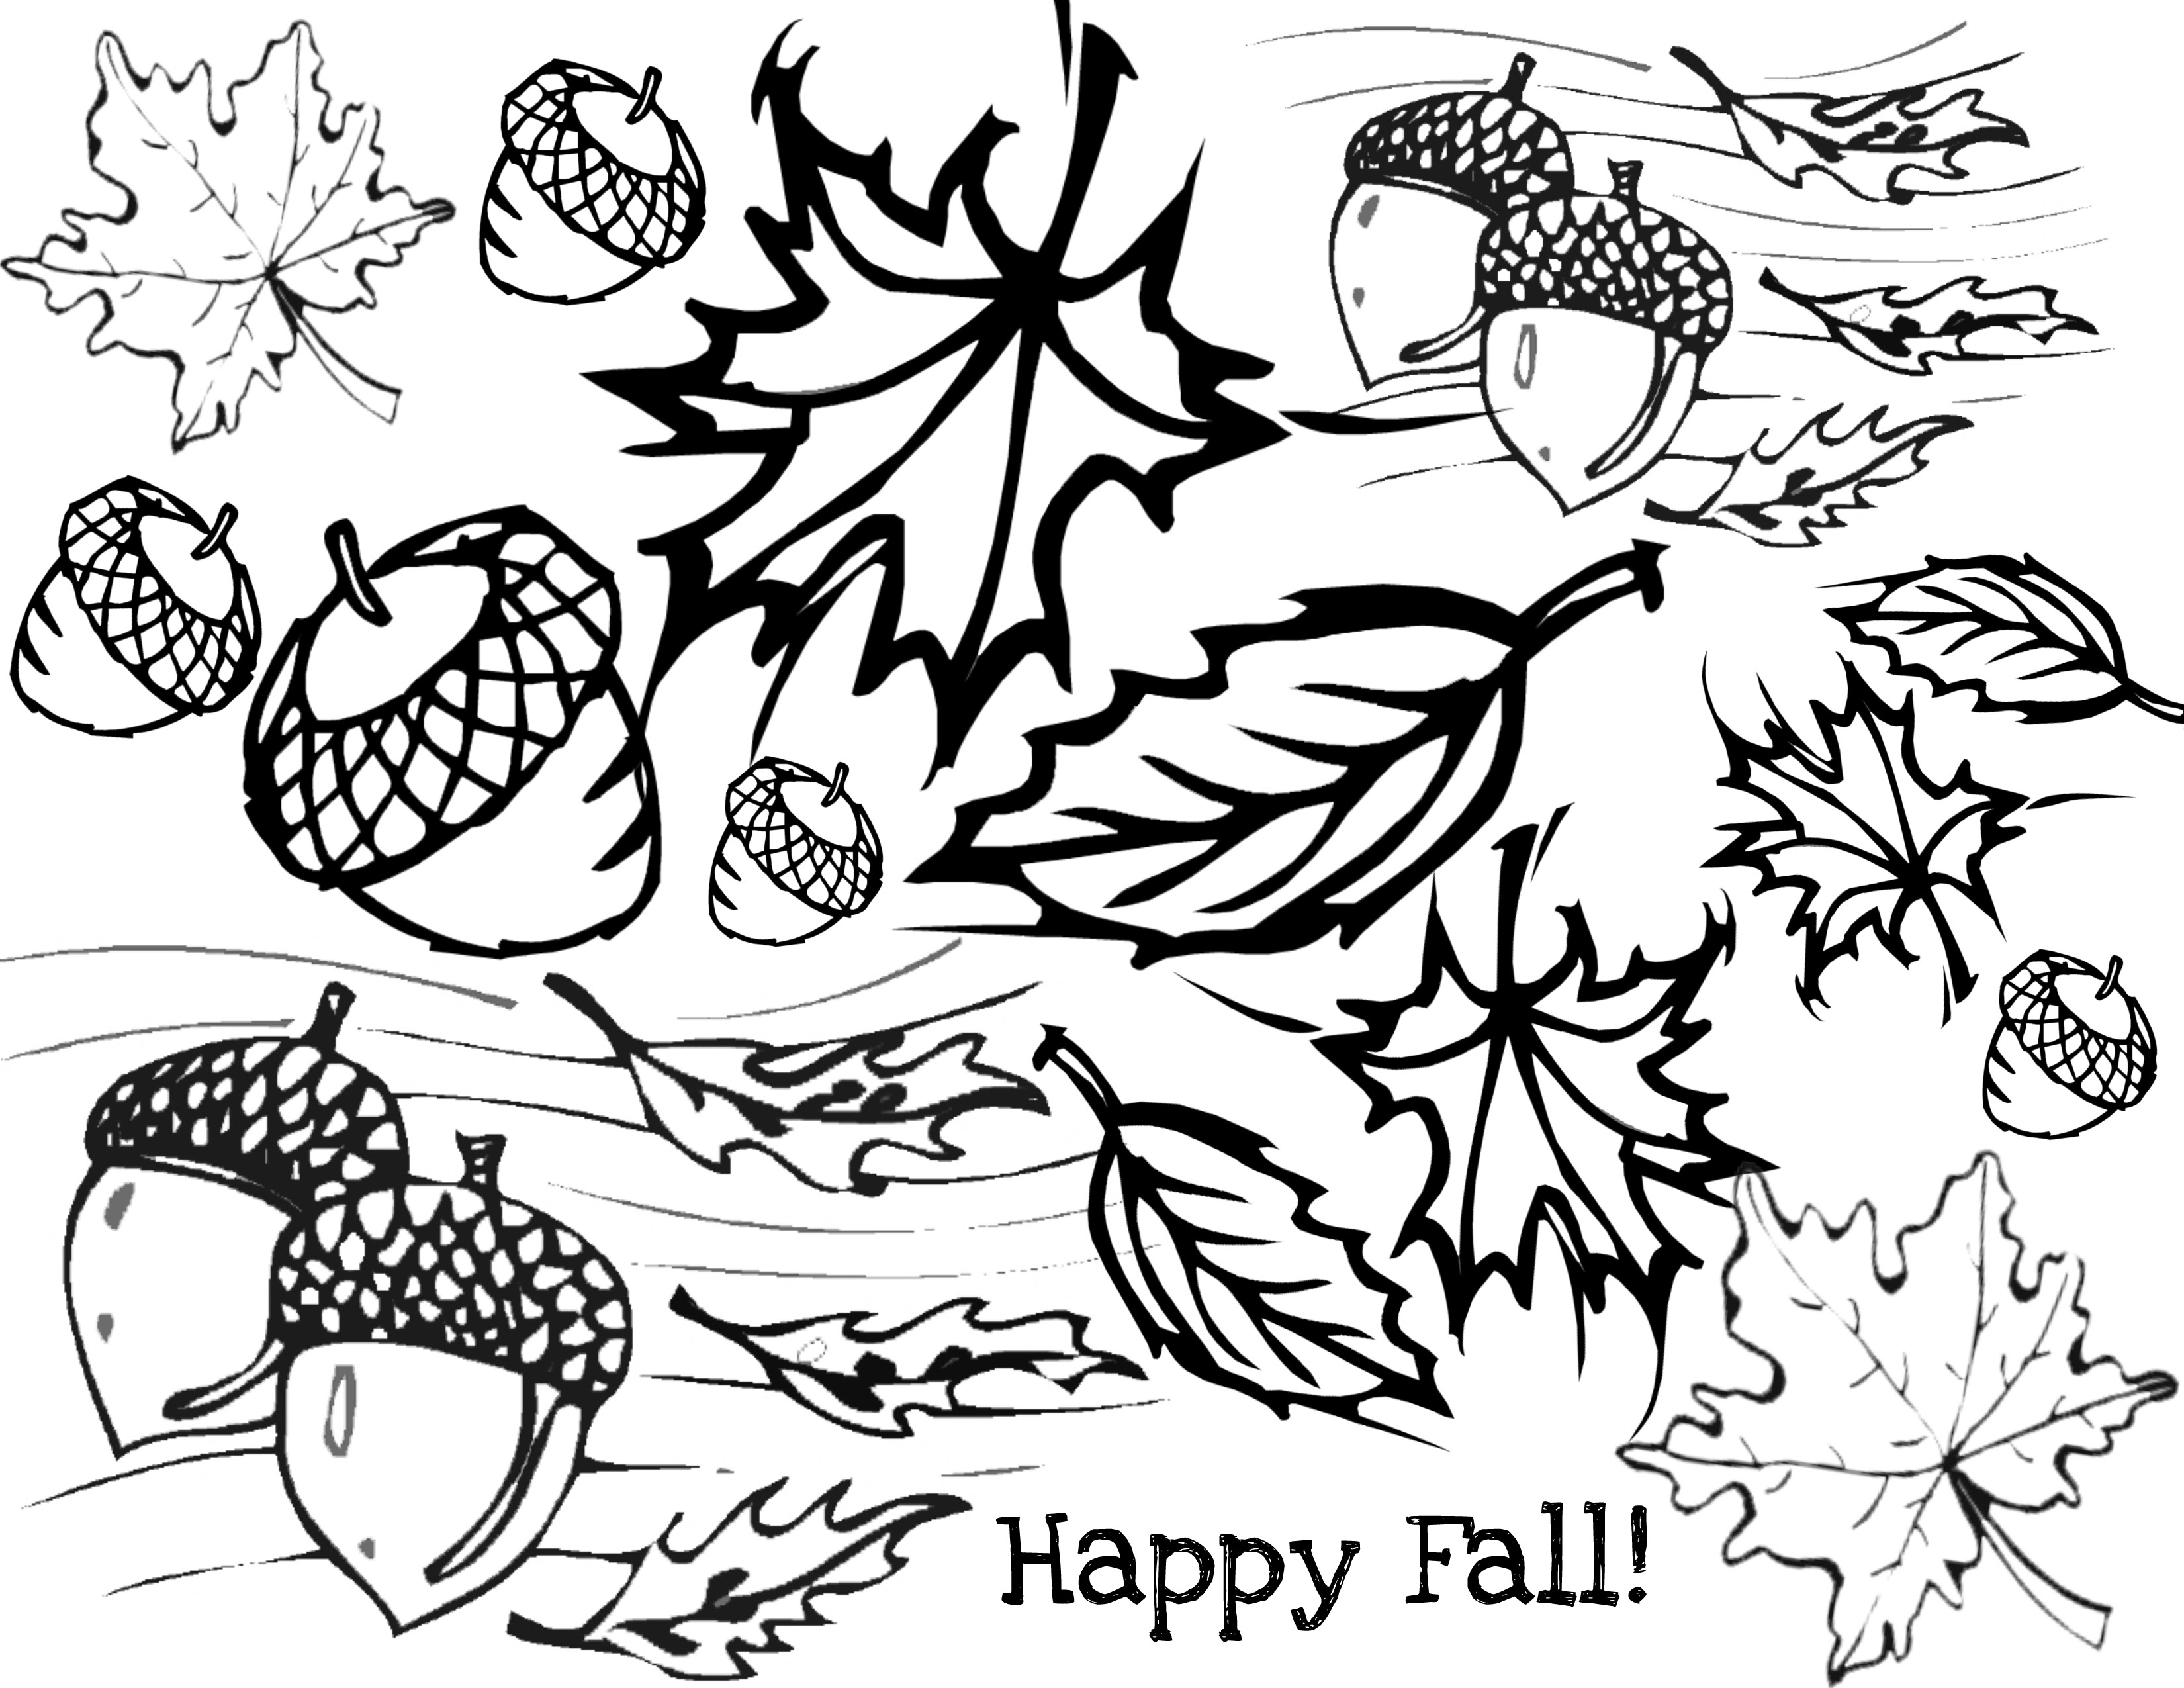 48 Top Happy Autumn Coloring Pages Pictures